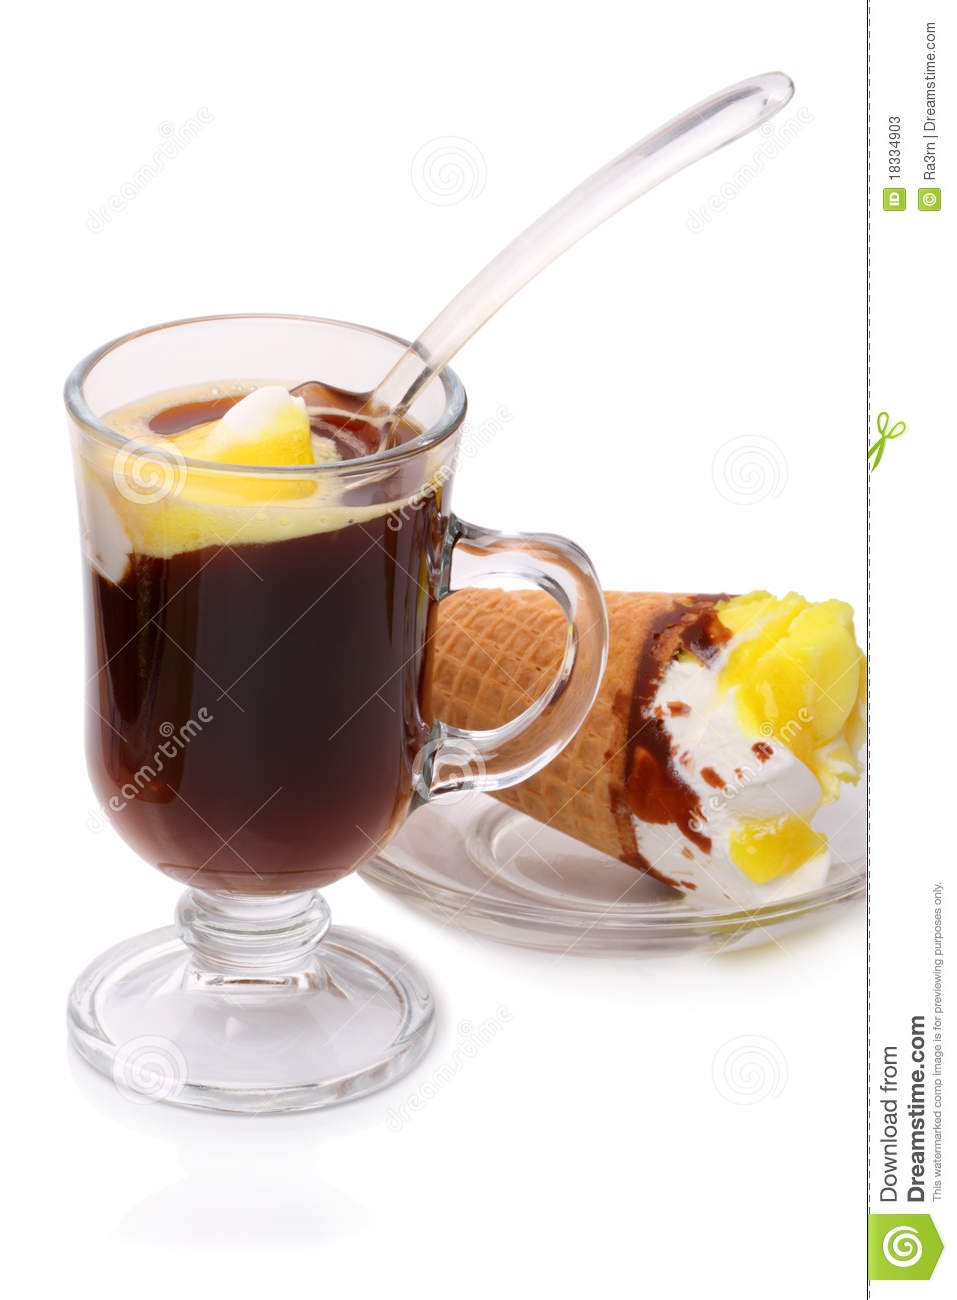 black-coffee-ice-cream-18334903.jpg